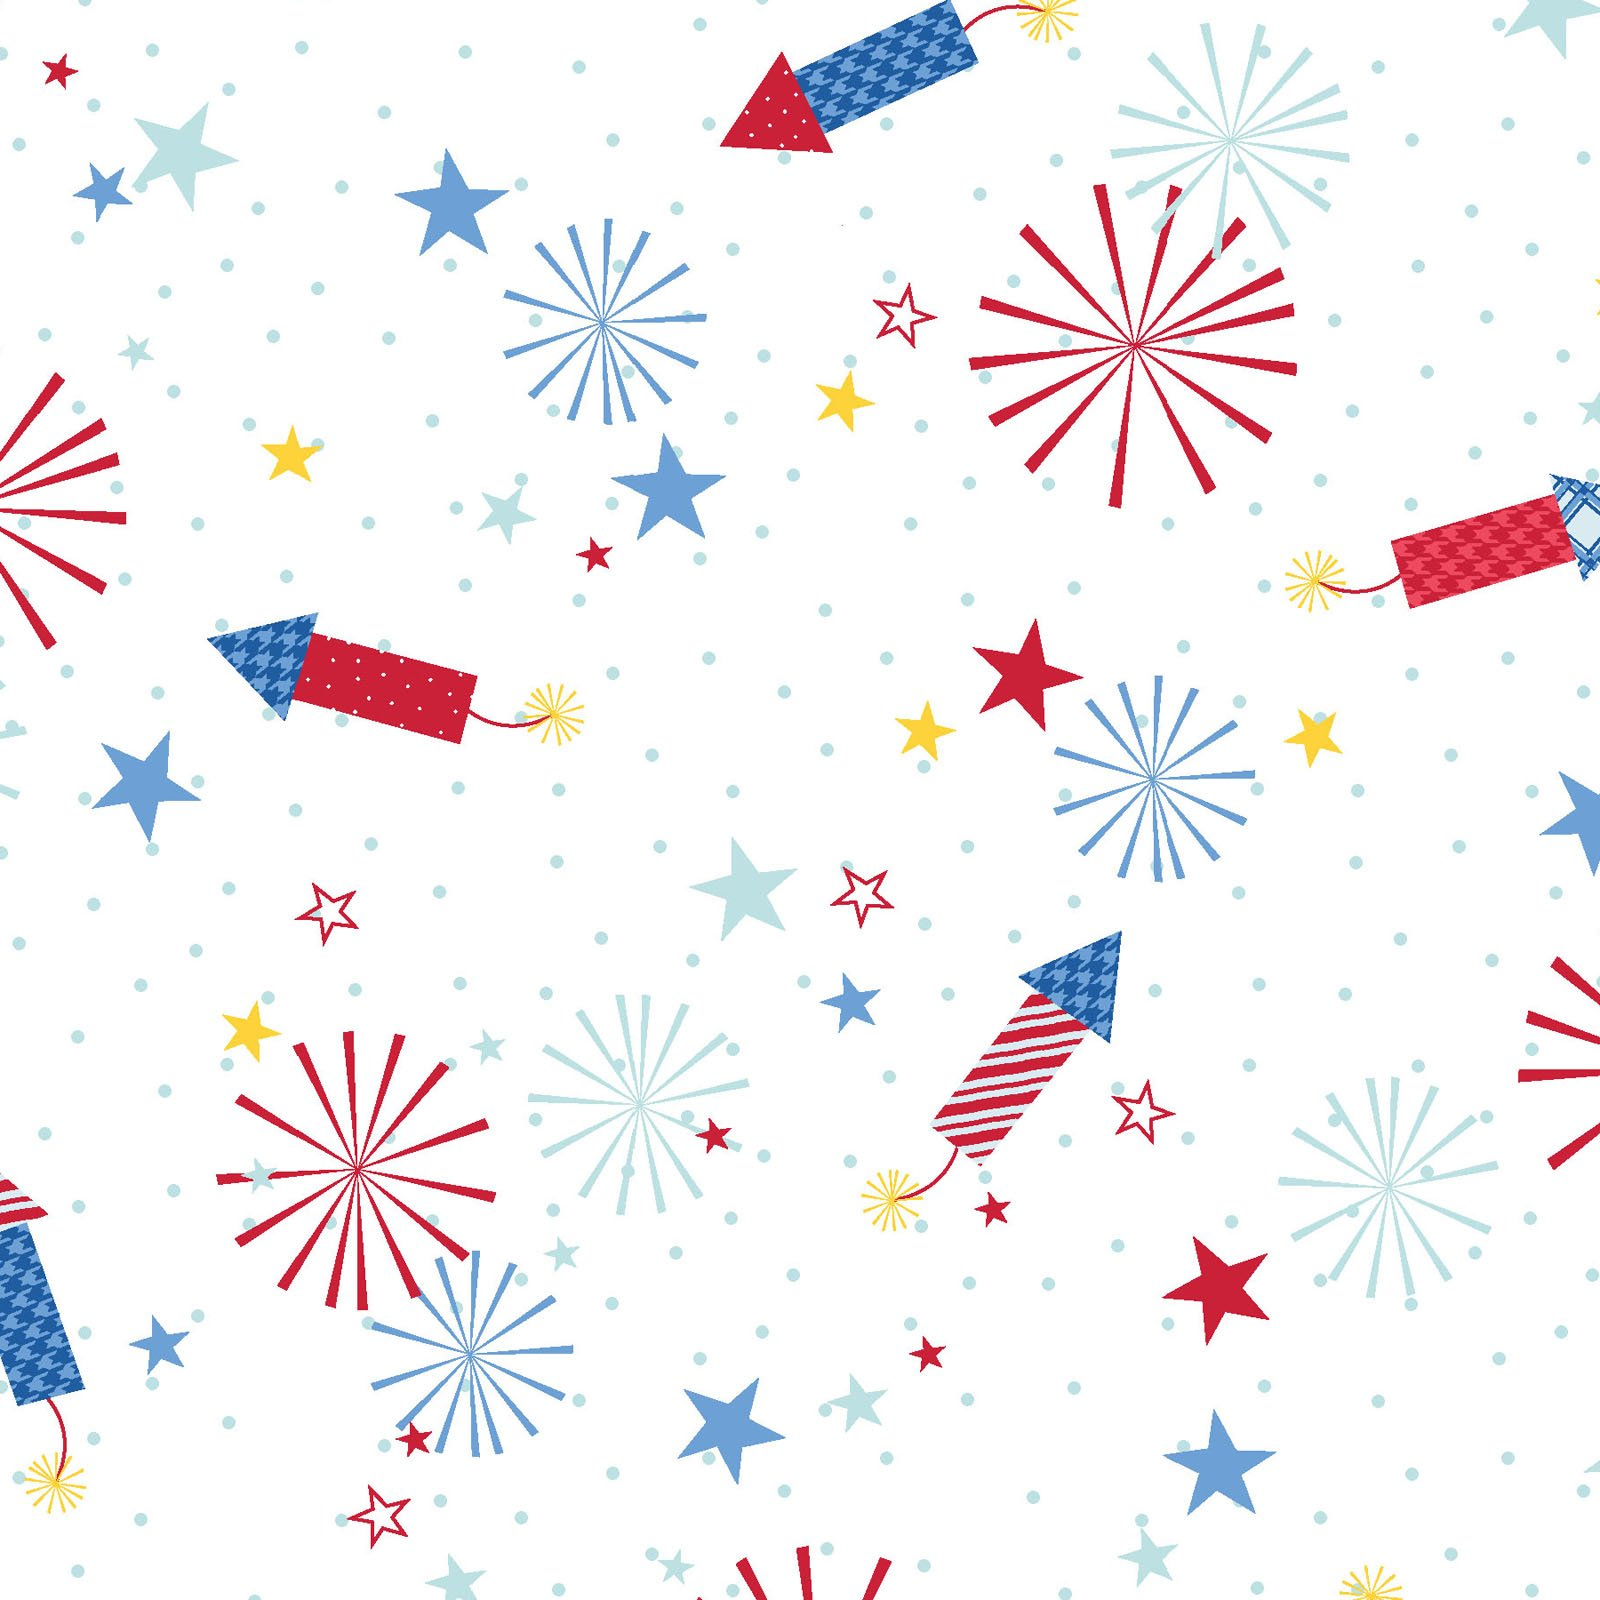 EESC-9903 W - RED, WHITE & BLOOM BY KIMBERBELL FIREWORKS WHITE - ARRIVING MARCH 2021